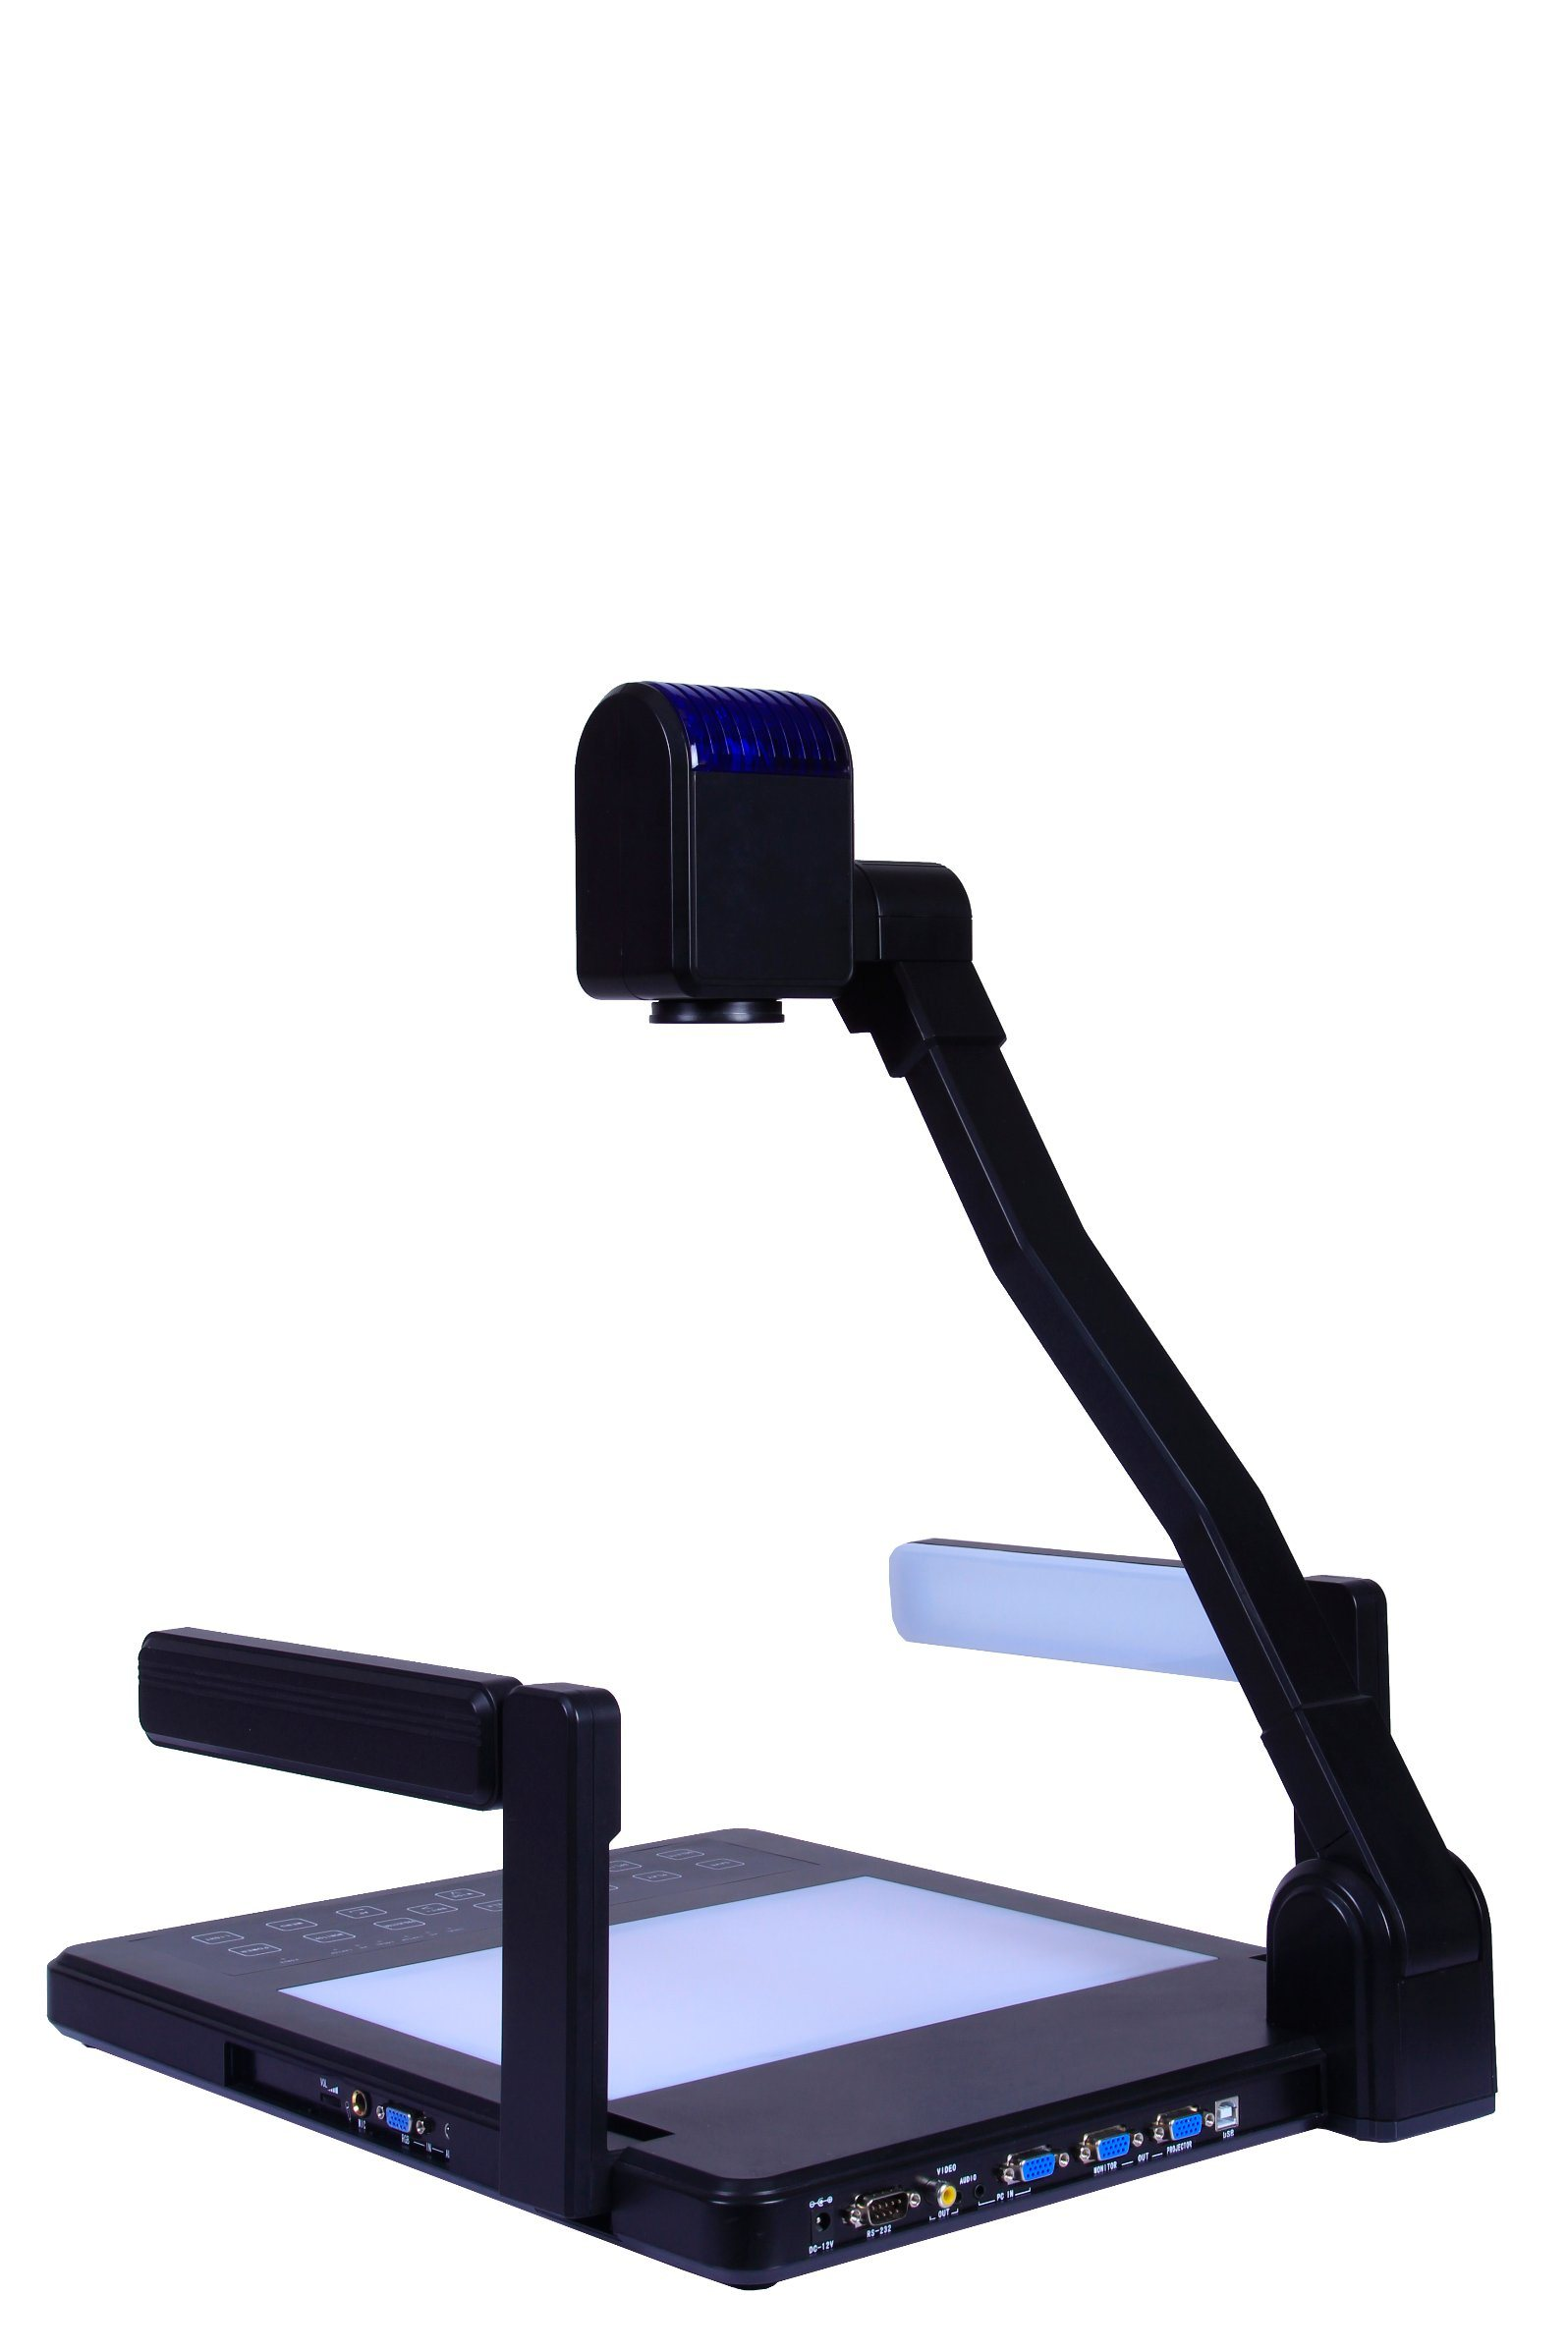 Educational Equipment Webcam Desktop Visualizer for Classroom